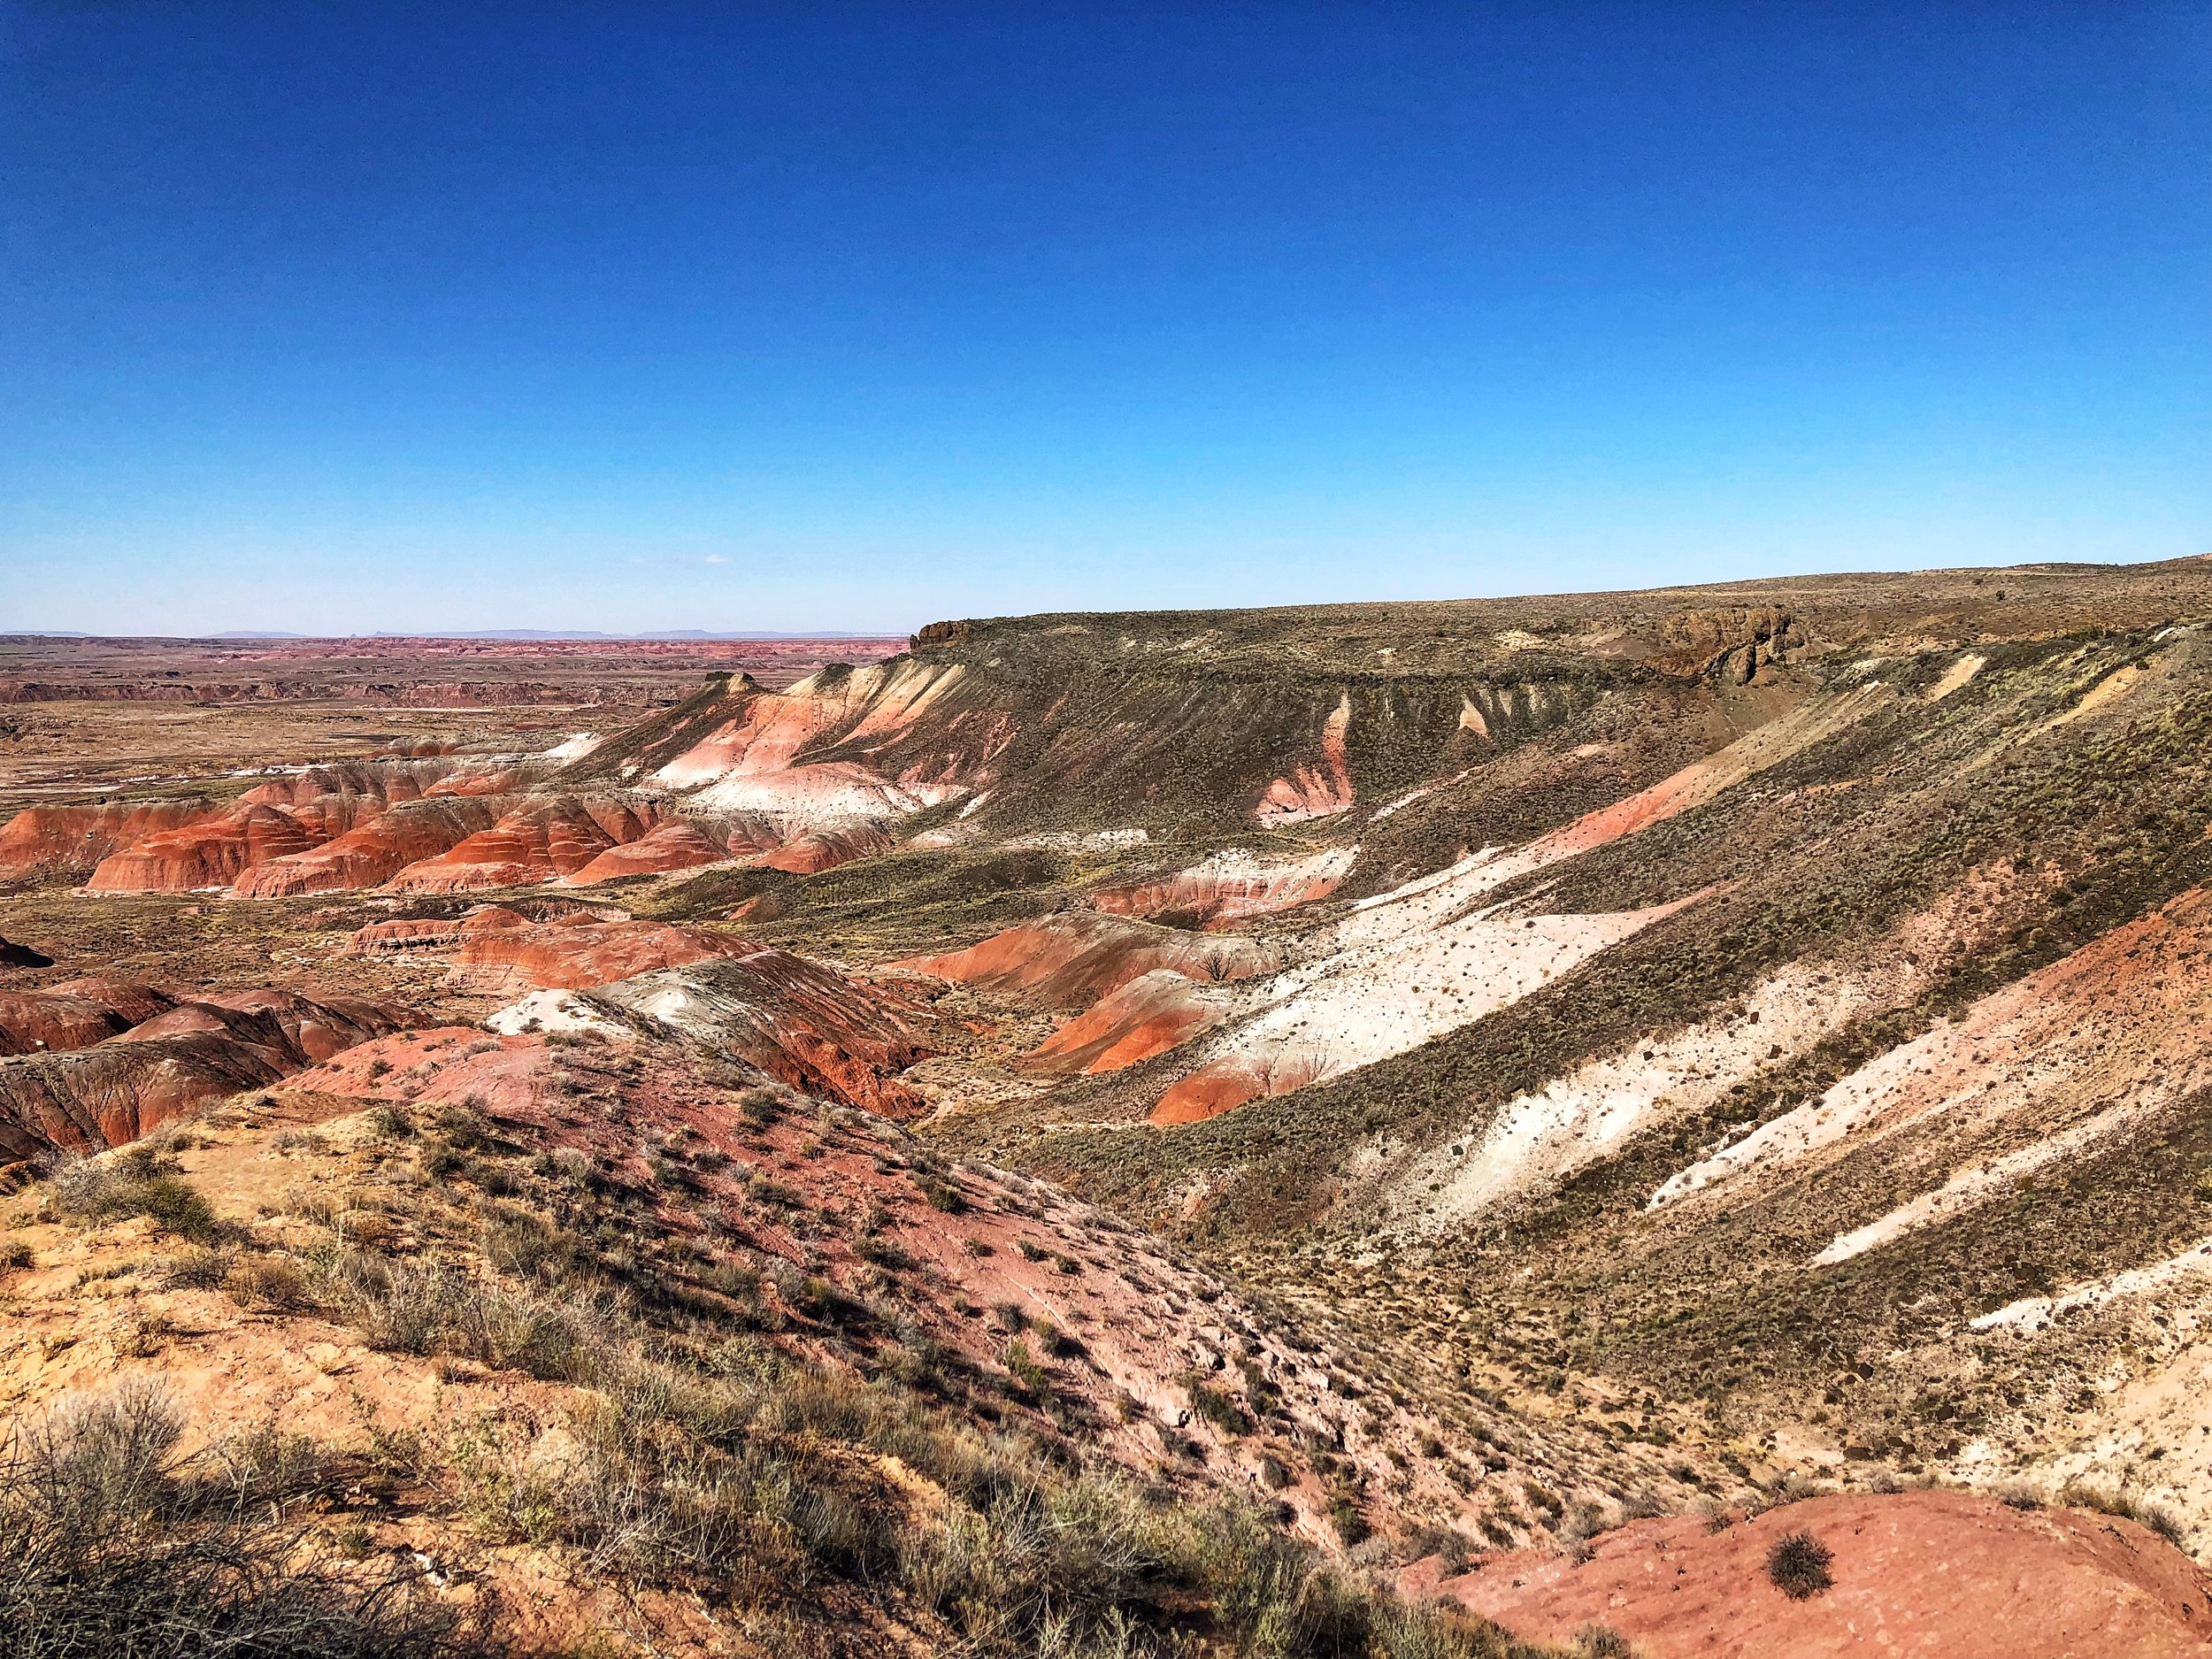 The next day, we went to visit the Petrified Forest National Park. This is the painted desert part. Just gorgeous.